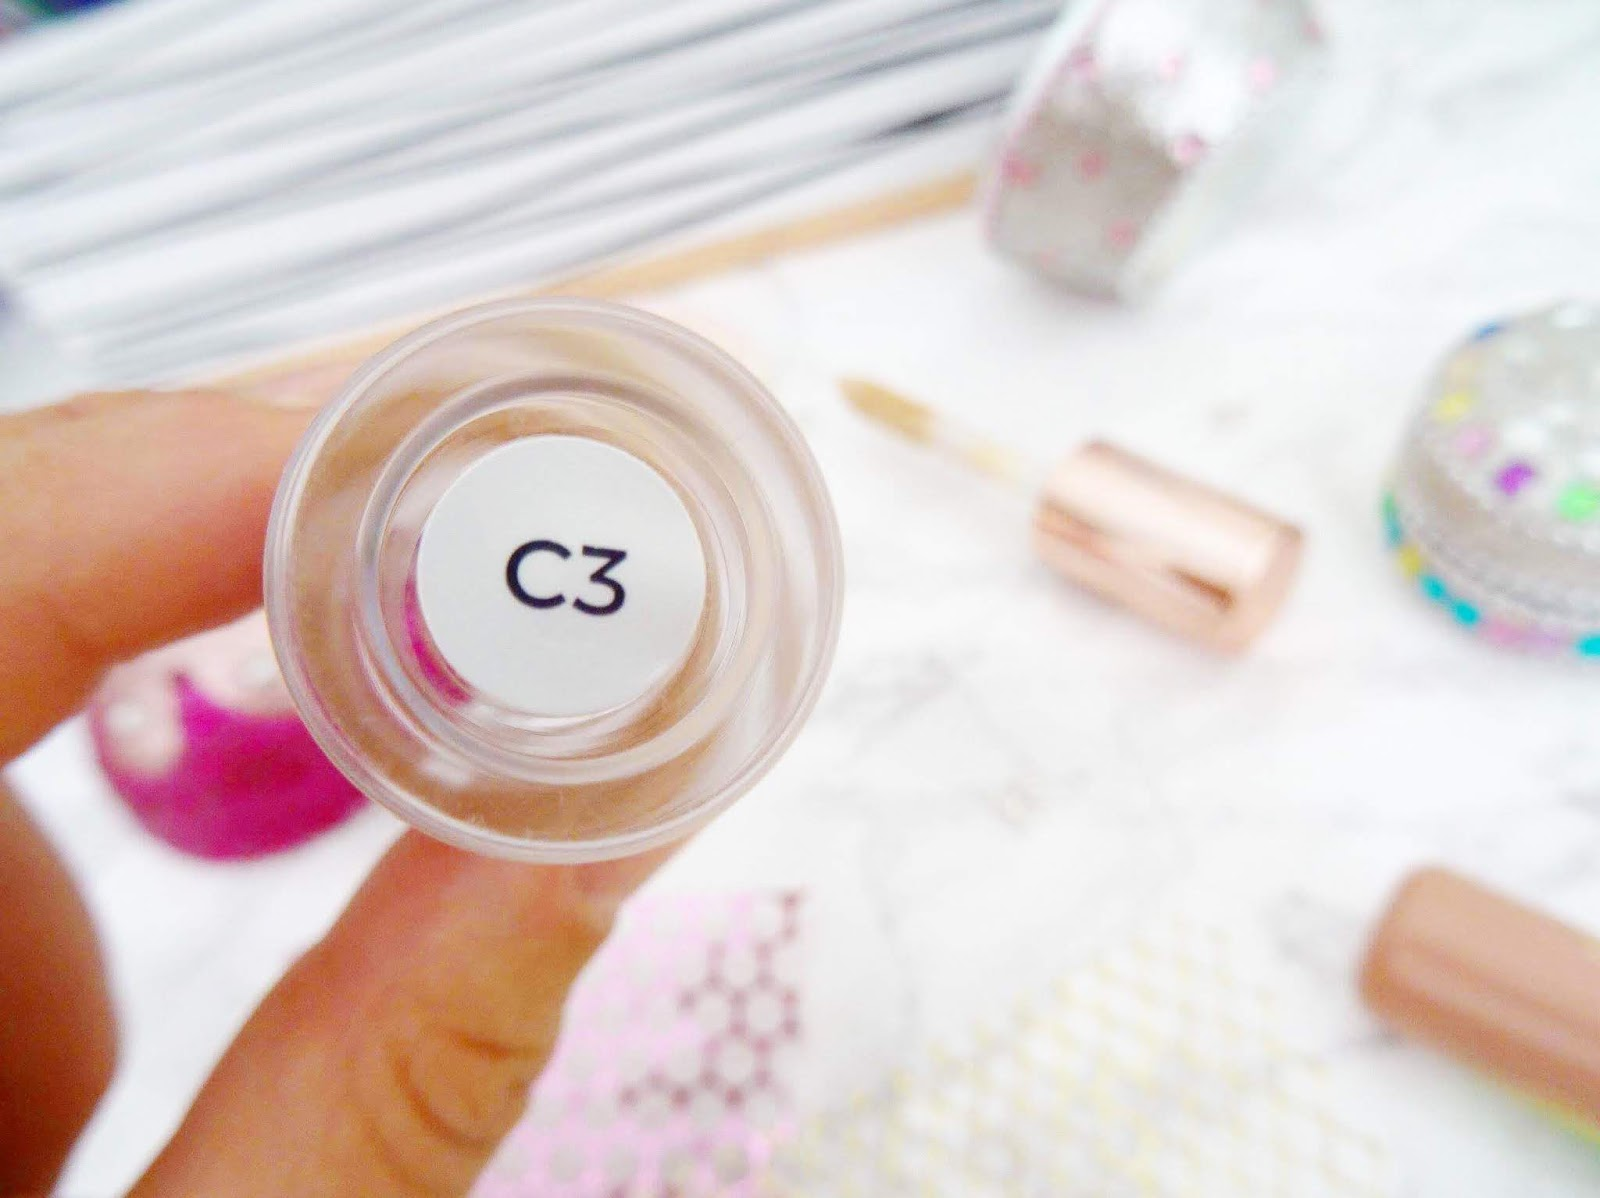 Makeup Revolutions Conceal and Define Concealer in C3